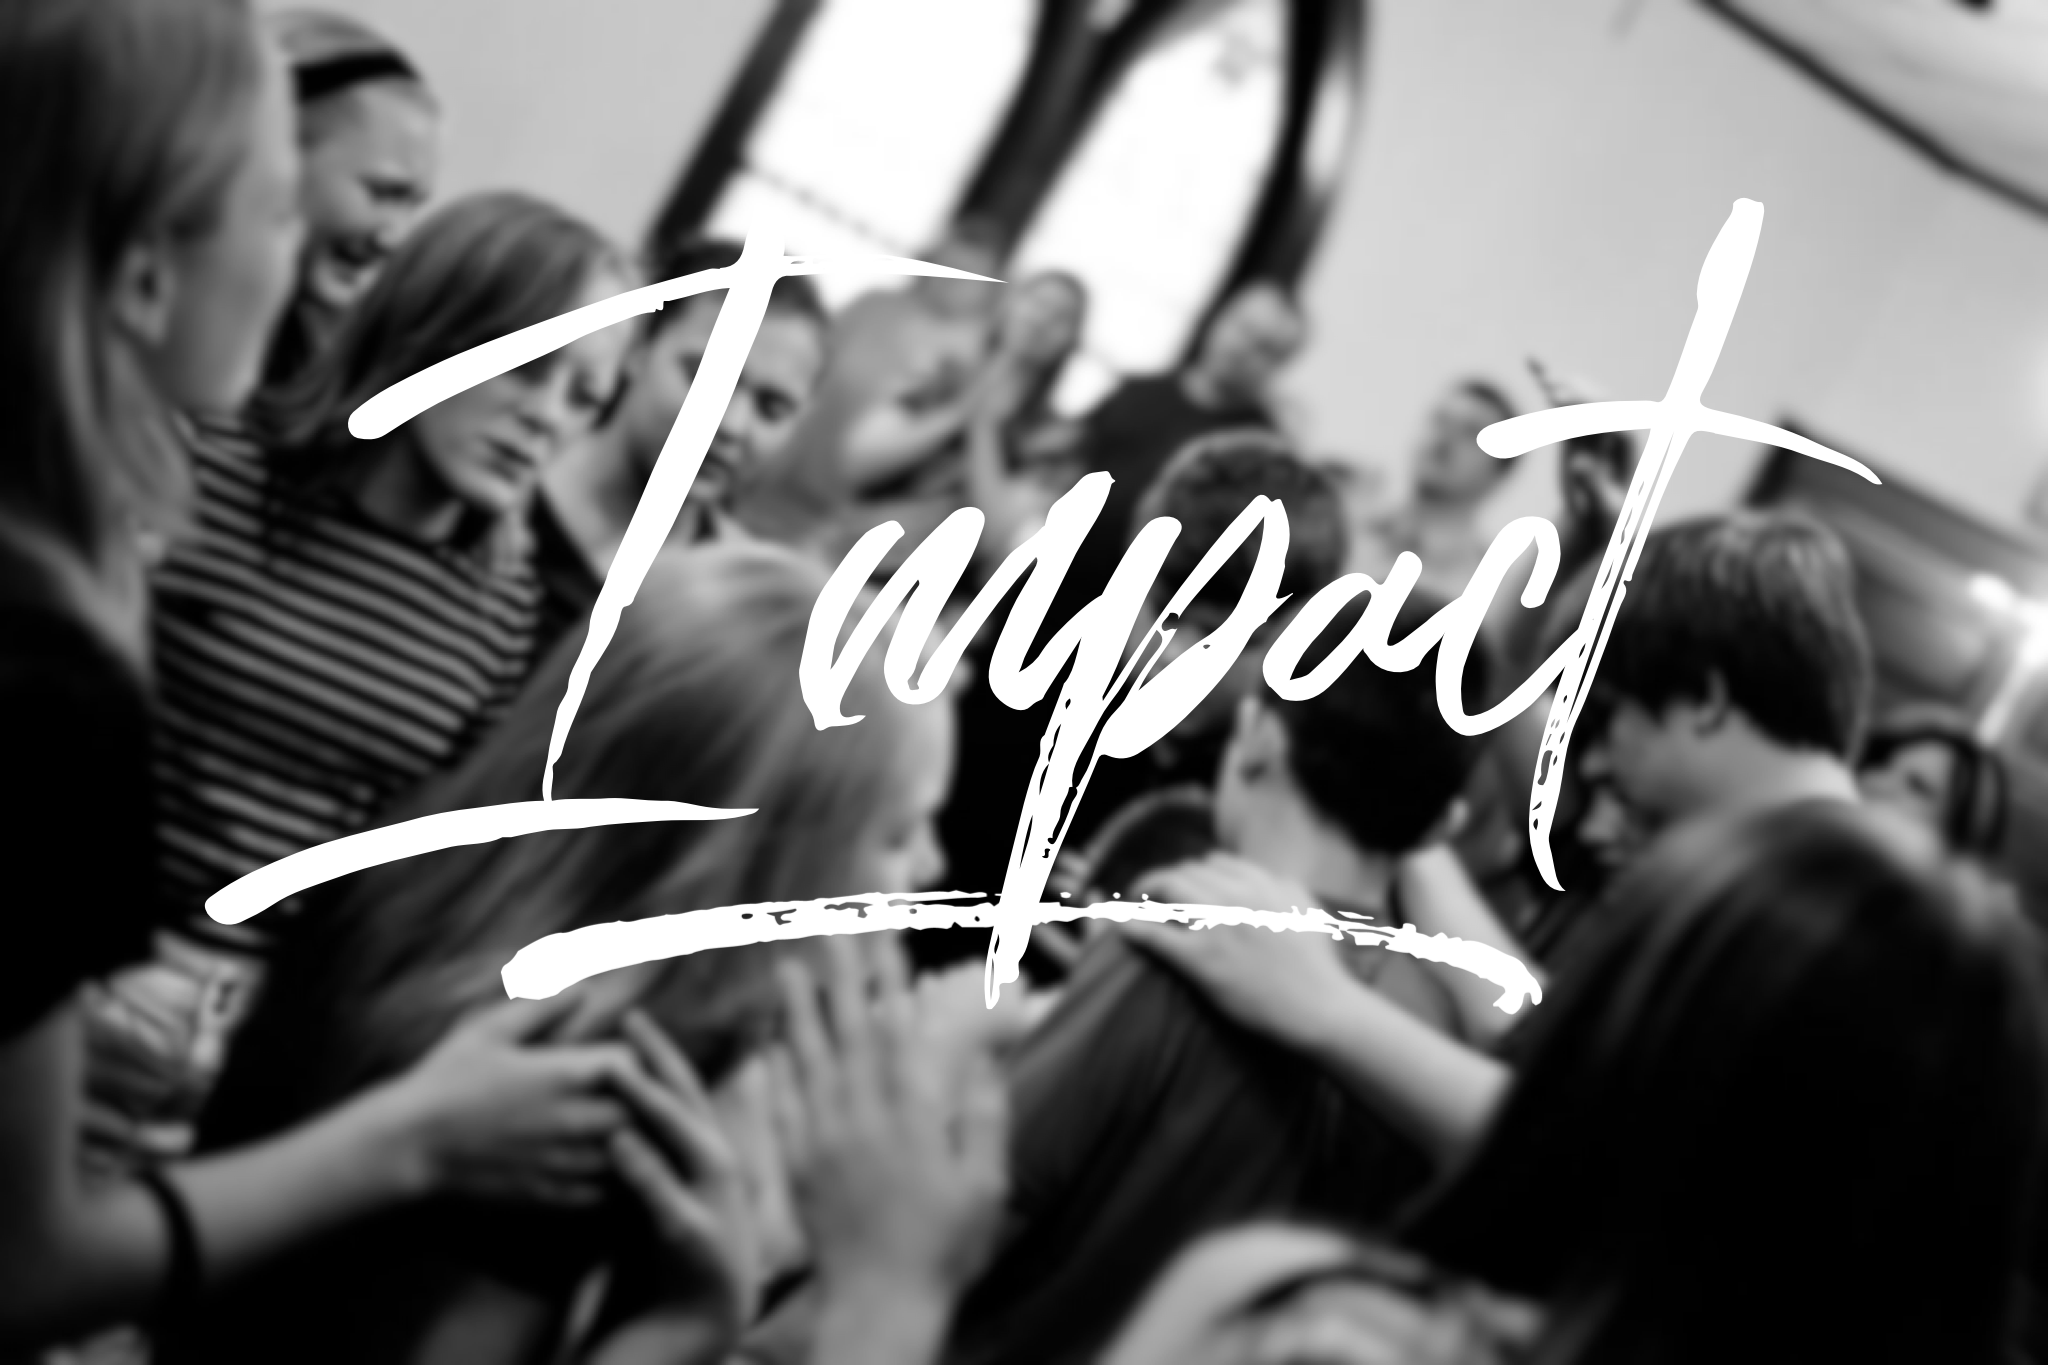 - we're not just here to have church! we're here to impact the world around us with the anointed power of the Holy Spirit.